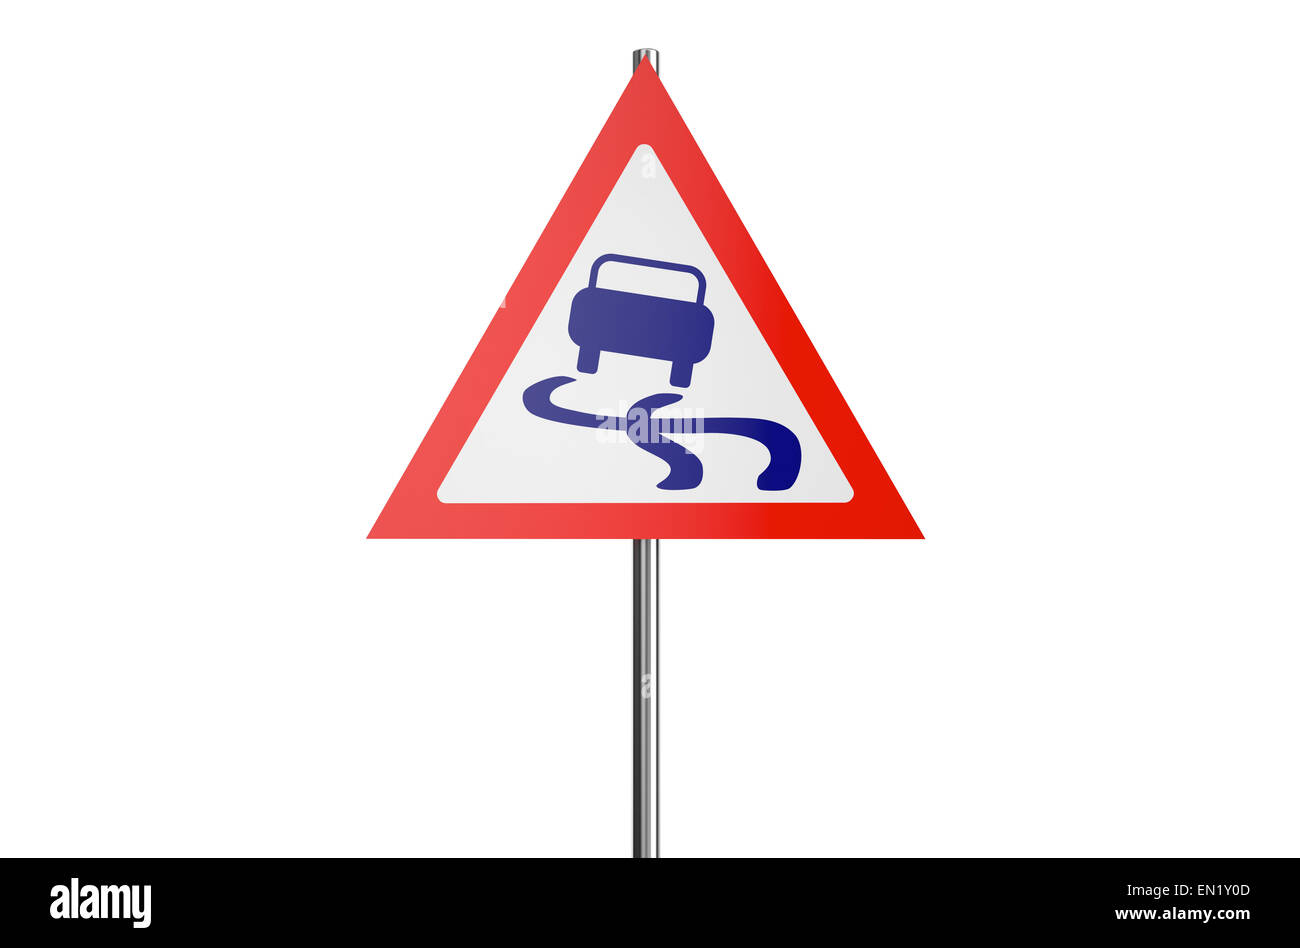 slippery road sign isolated on white background - Stock Image